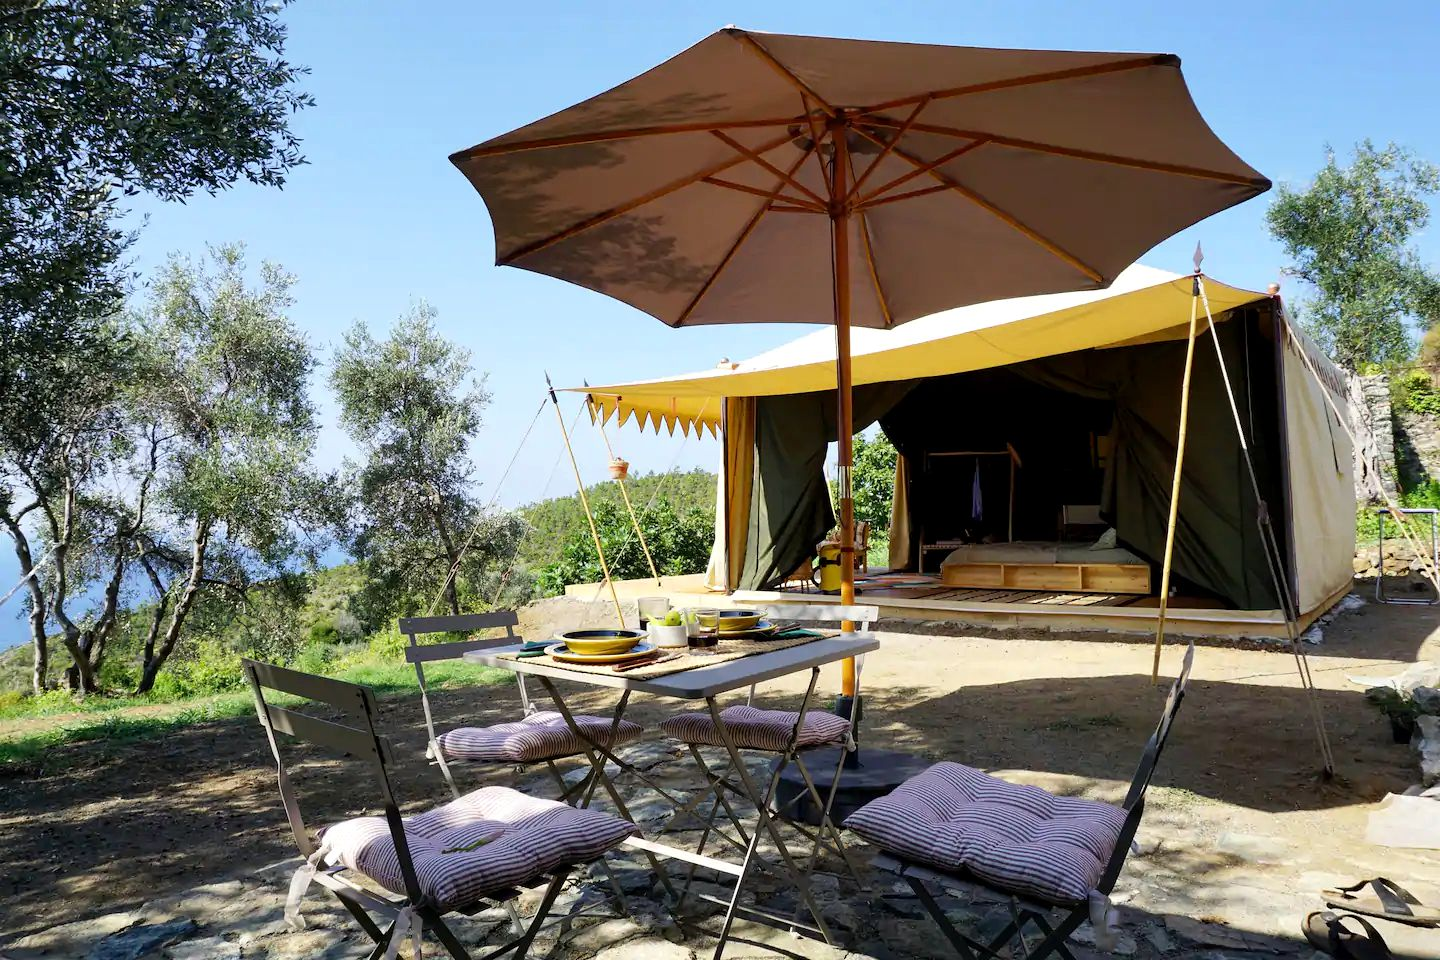 This incredible Levanto accommodation is ideal for glamping in Italy